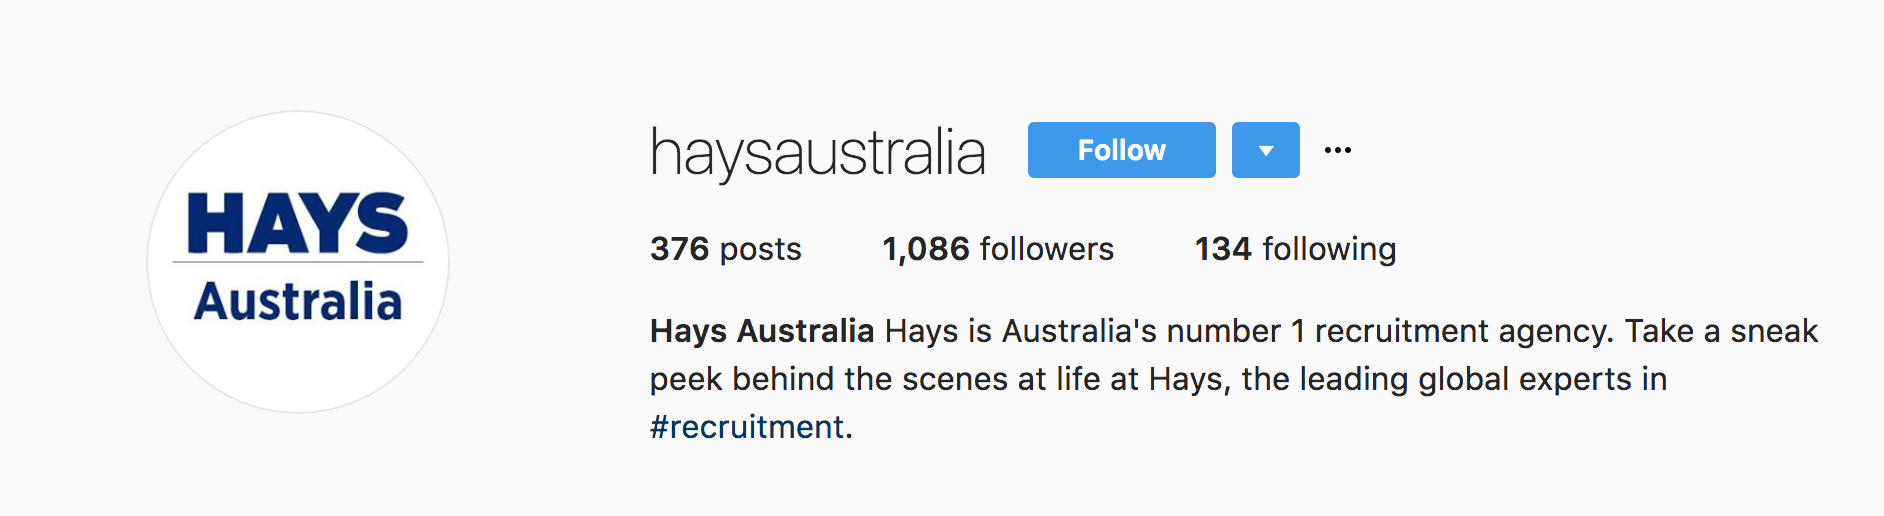 Hays Instagram